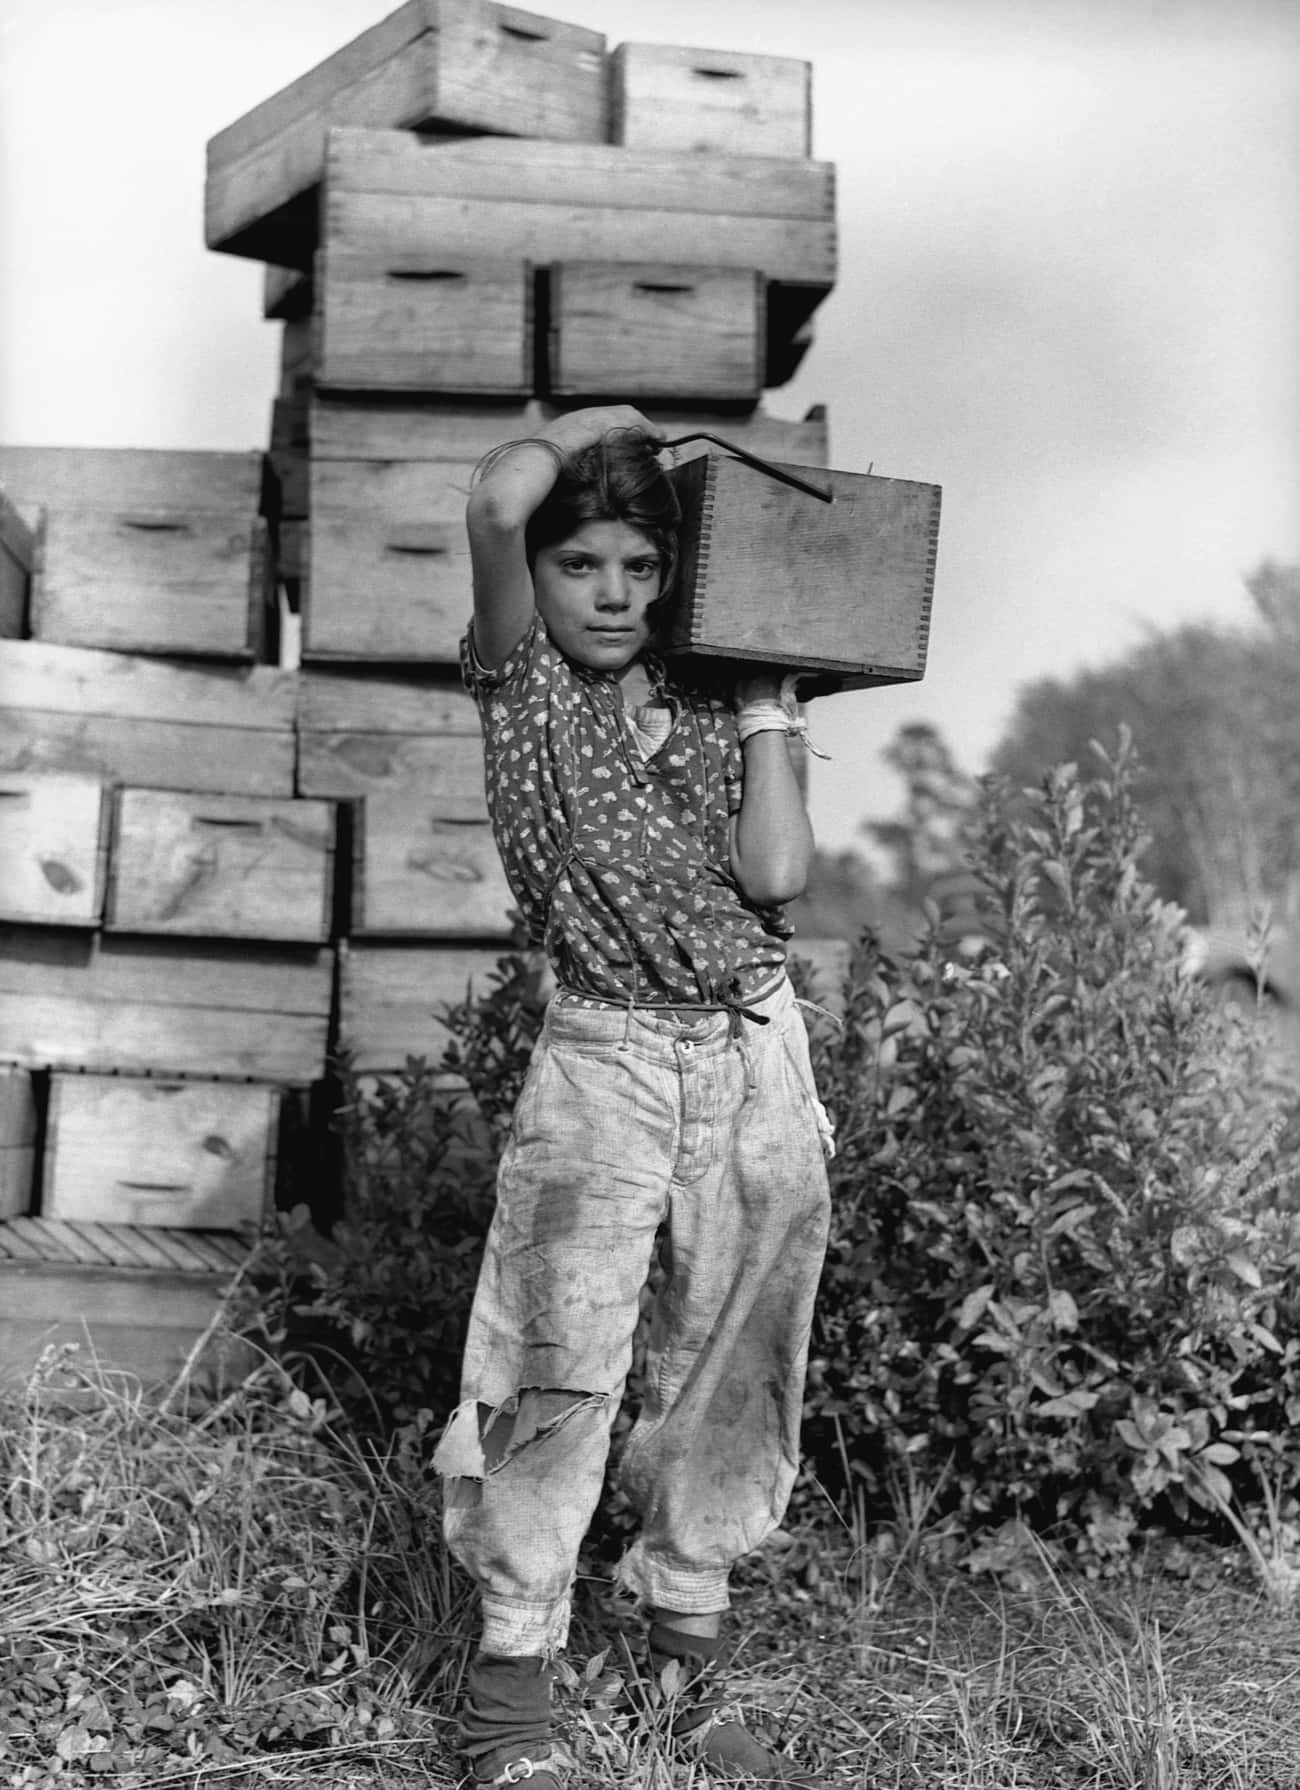 A Migrant Girl Carries A Box O is listed (or ranked) 1 on the list 22 Amazing Photos Of Badass Women During The Great Depression